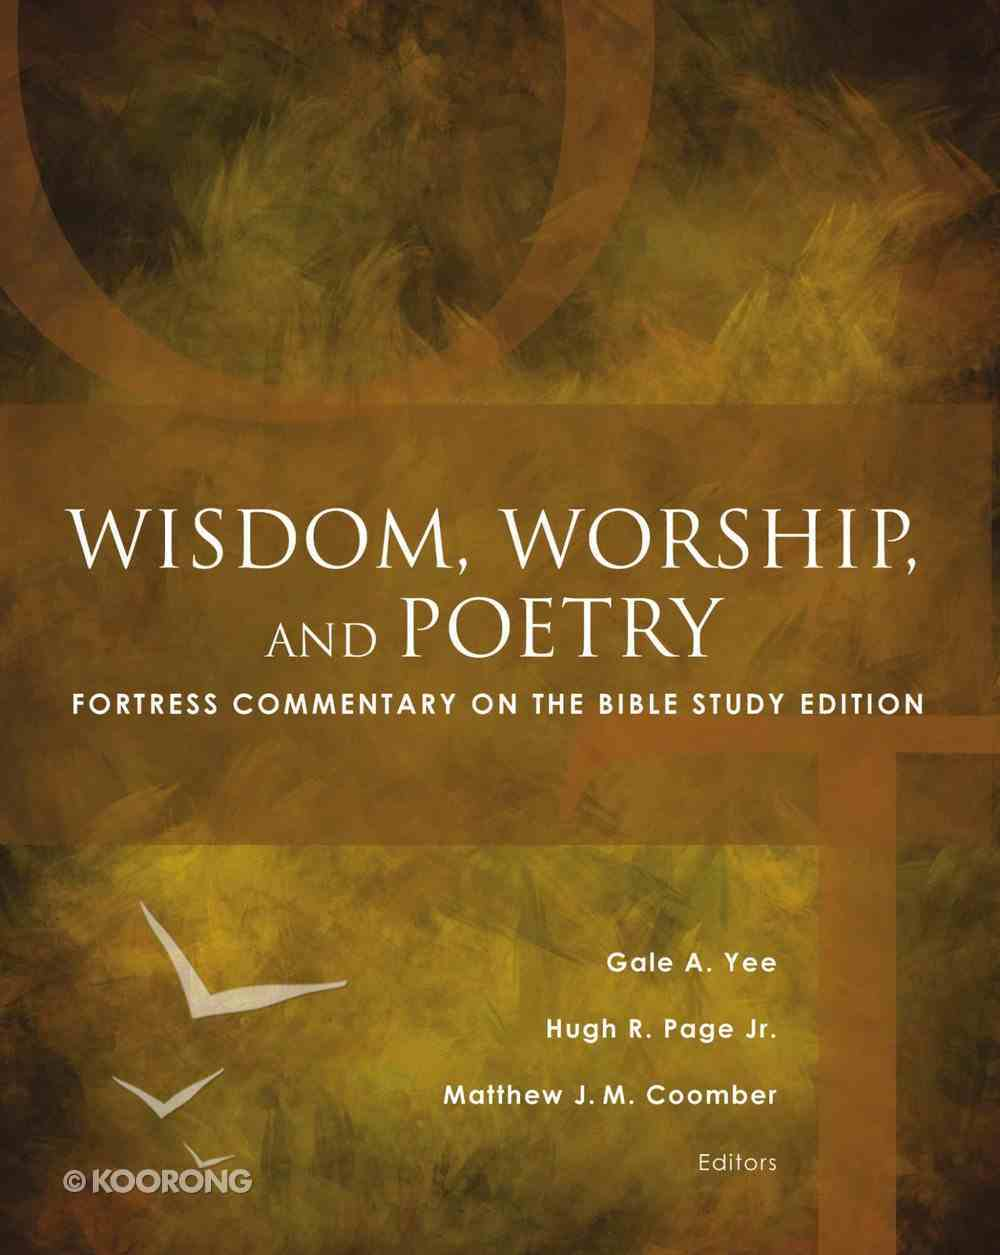 Wisdom, Worship, and Poetry (Fortress Commentary On The Bible Series) eBook